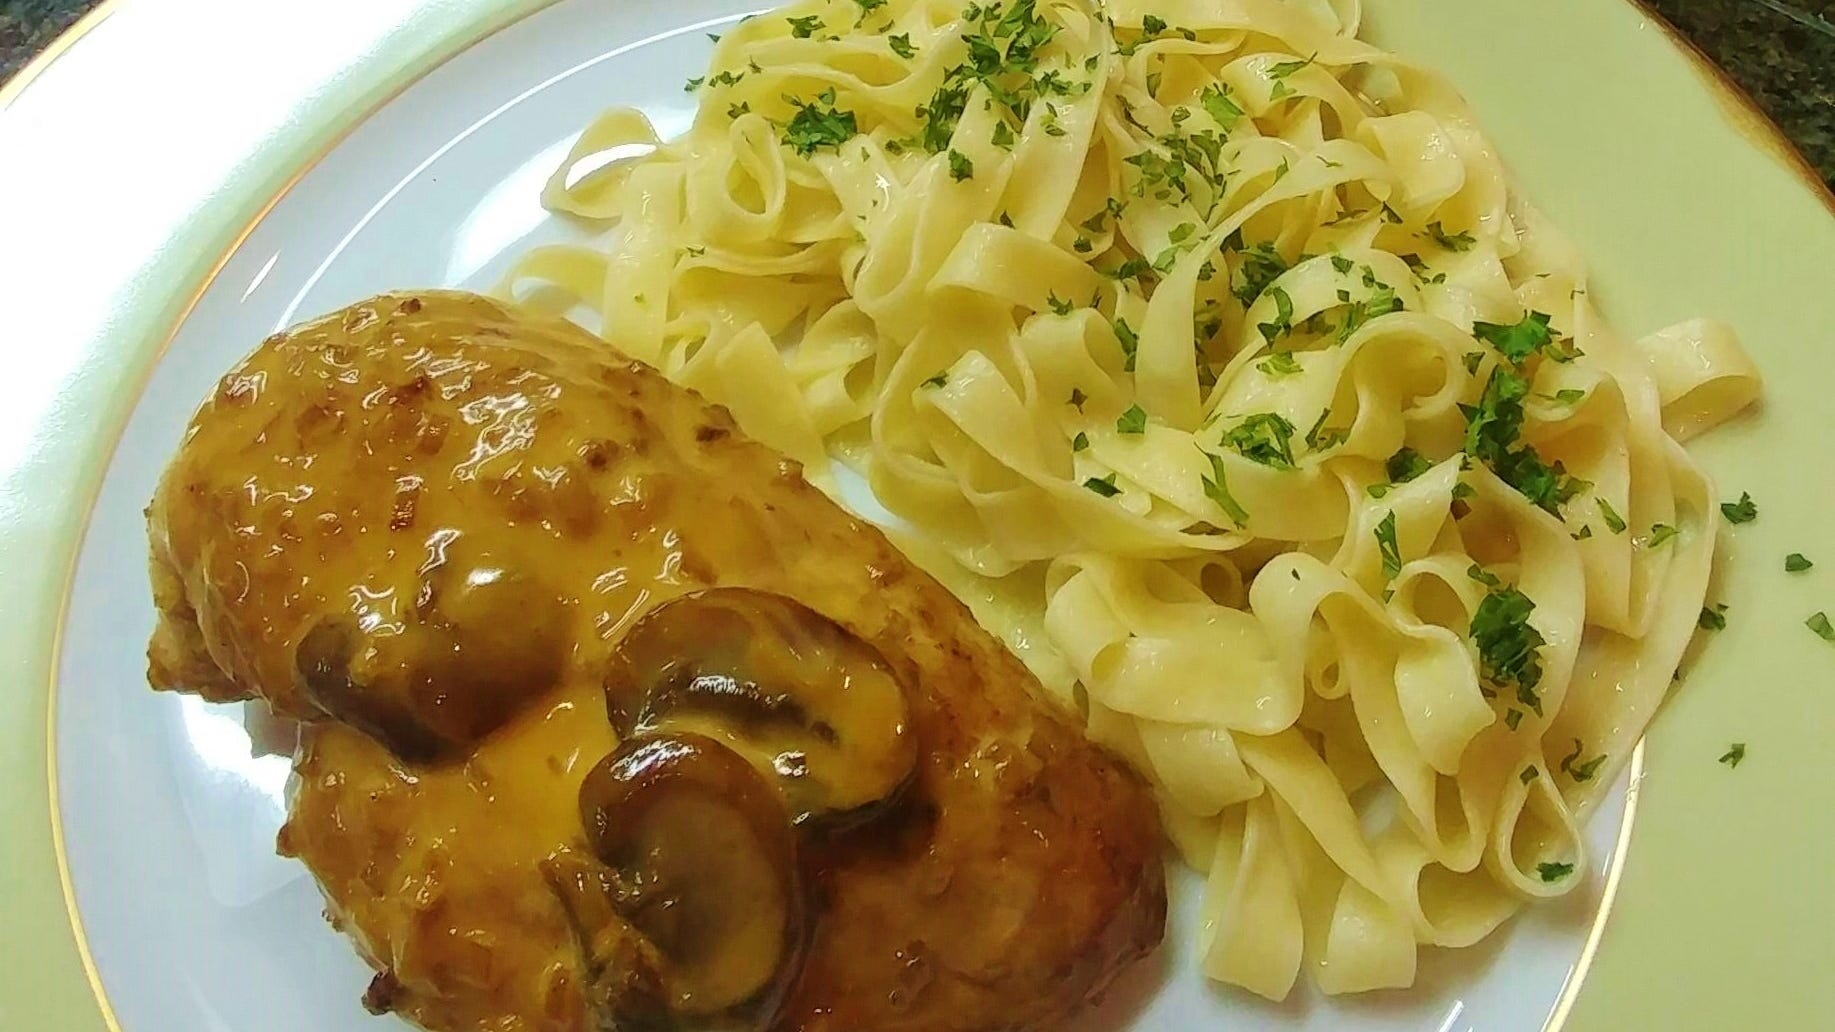 Chicken In Reisling wine with Alsatian noodles.